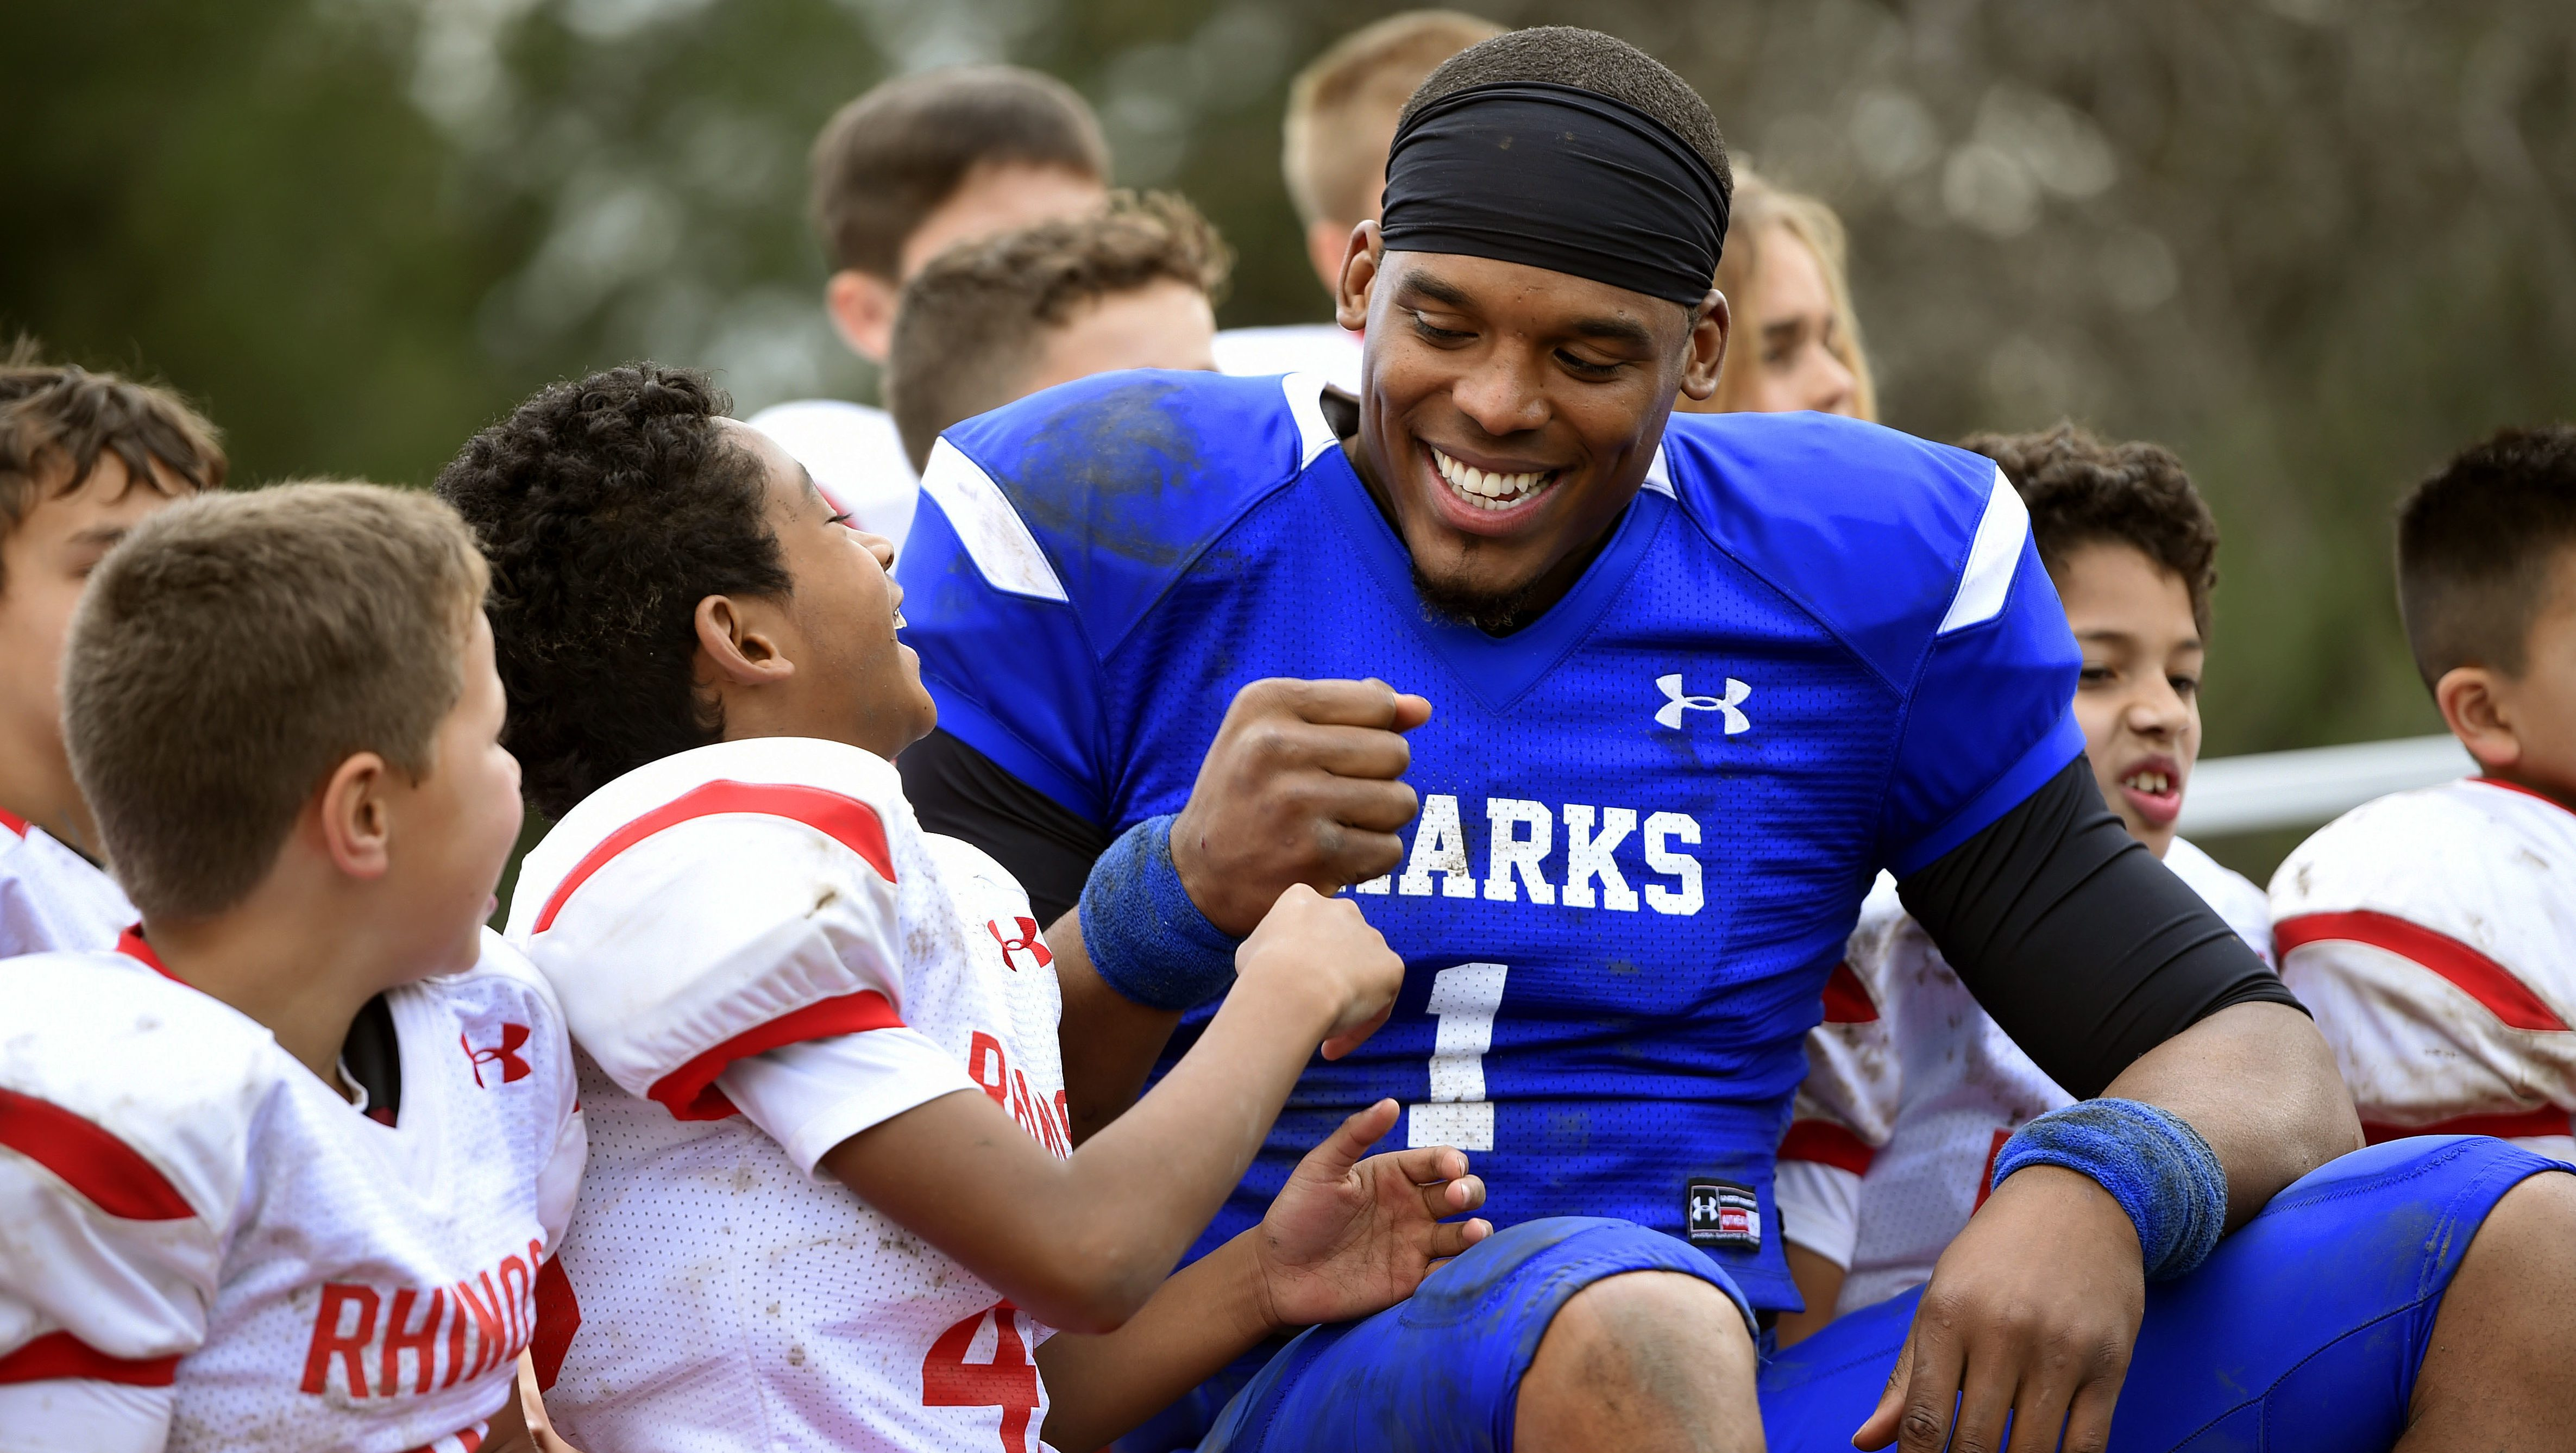 This Jan. 13, 2017 photo shows NFL player Cam Newton, right, bumping fists with youth football player Keilan Matthews, 8, of Santa Clarita, Calif., during the filming of a Buick commercial for this year's Super Bowl telecast in Los Angeles.  The commercial is set to air during the first quarter.  (Photo by Chris Pizzello/Invision/AP)